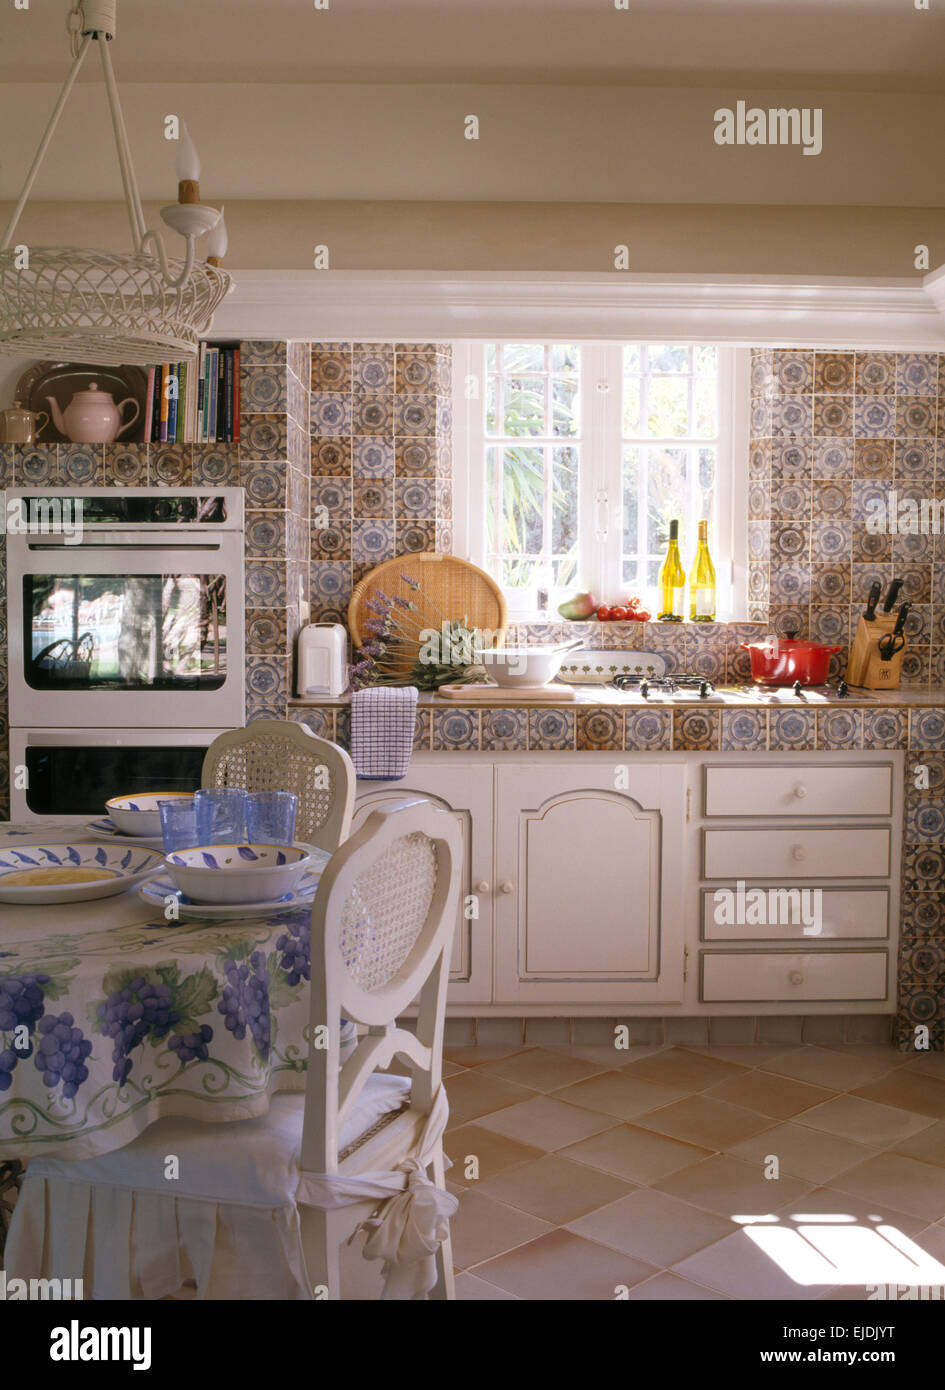 patterned kitchen wall tiles patterned wall tiles and worktop in country kitchen 4107